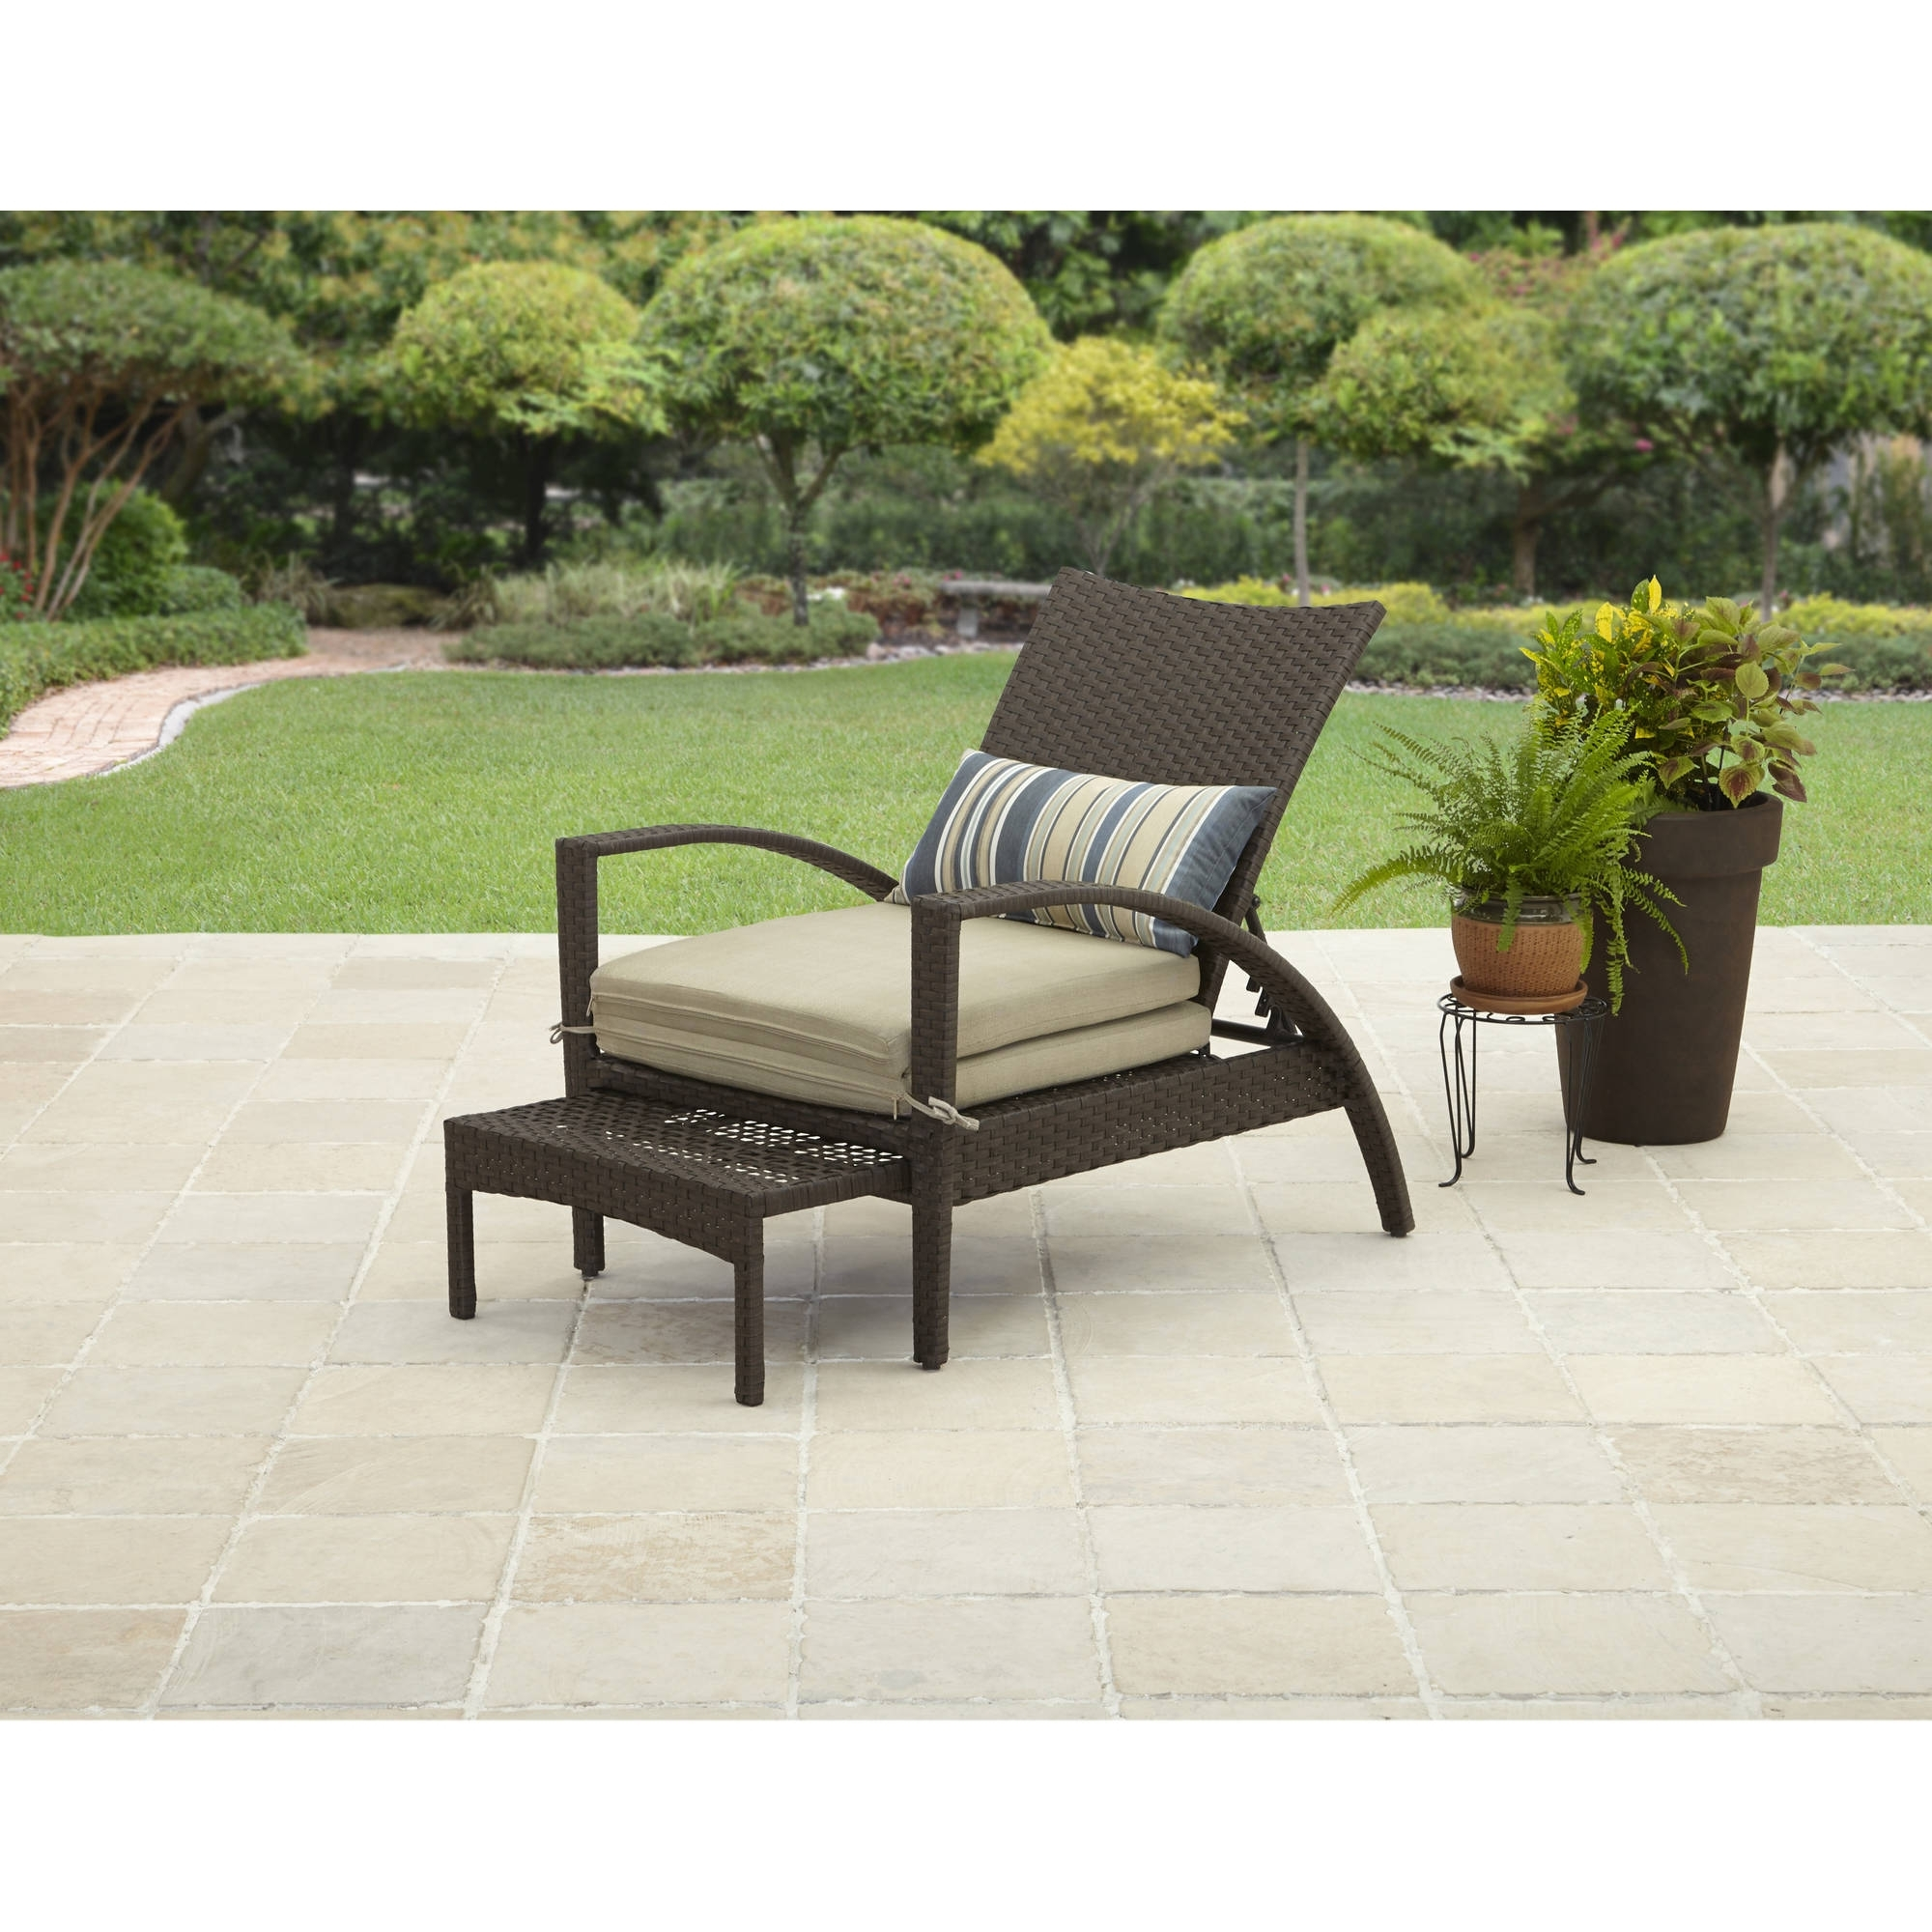 Fashionable Walmart Outdoor Chaise Lounges In Better Homes And Gardens Avila Beach Pull Out Chaise – Walmart (View 4 of 15)